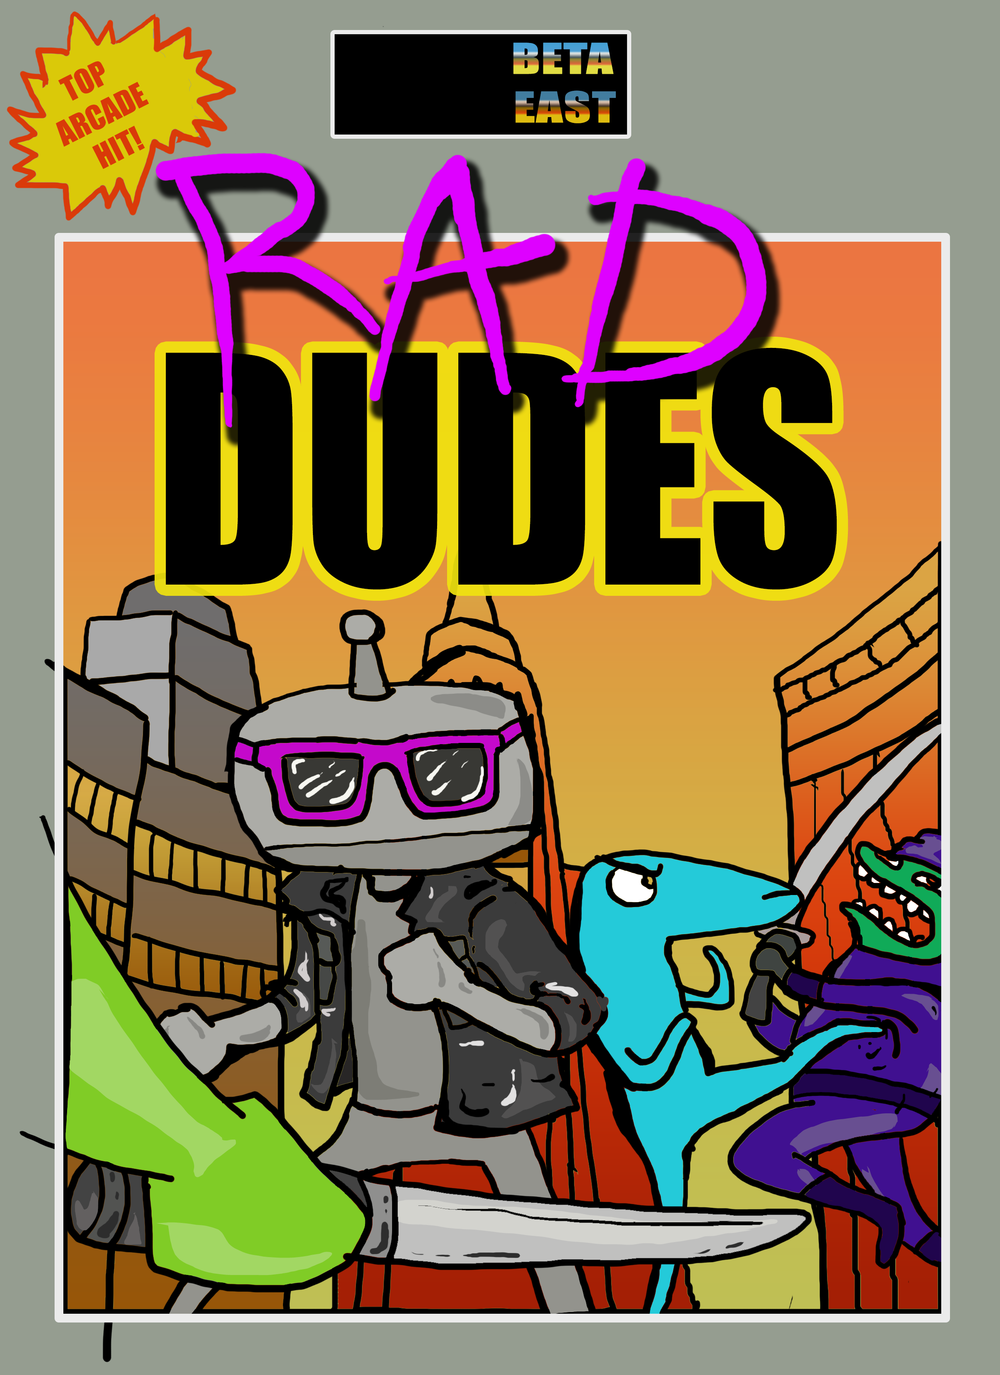 rad dudes game cover5.png